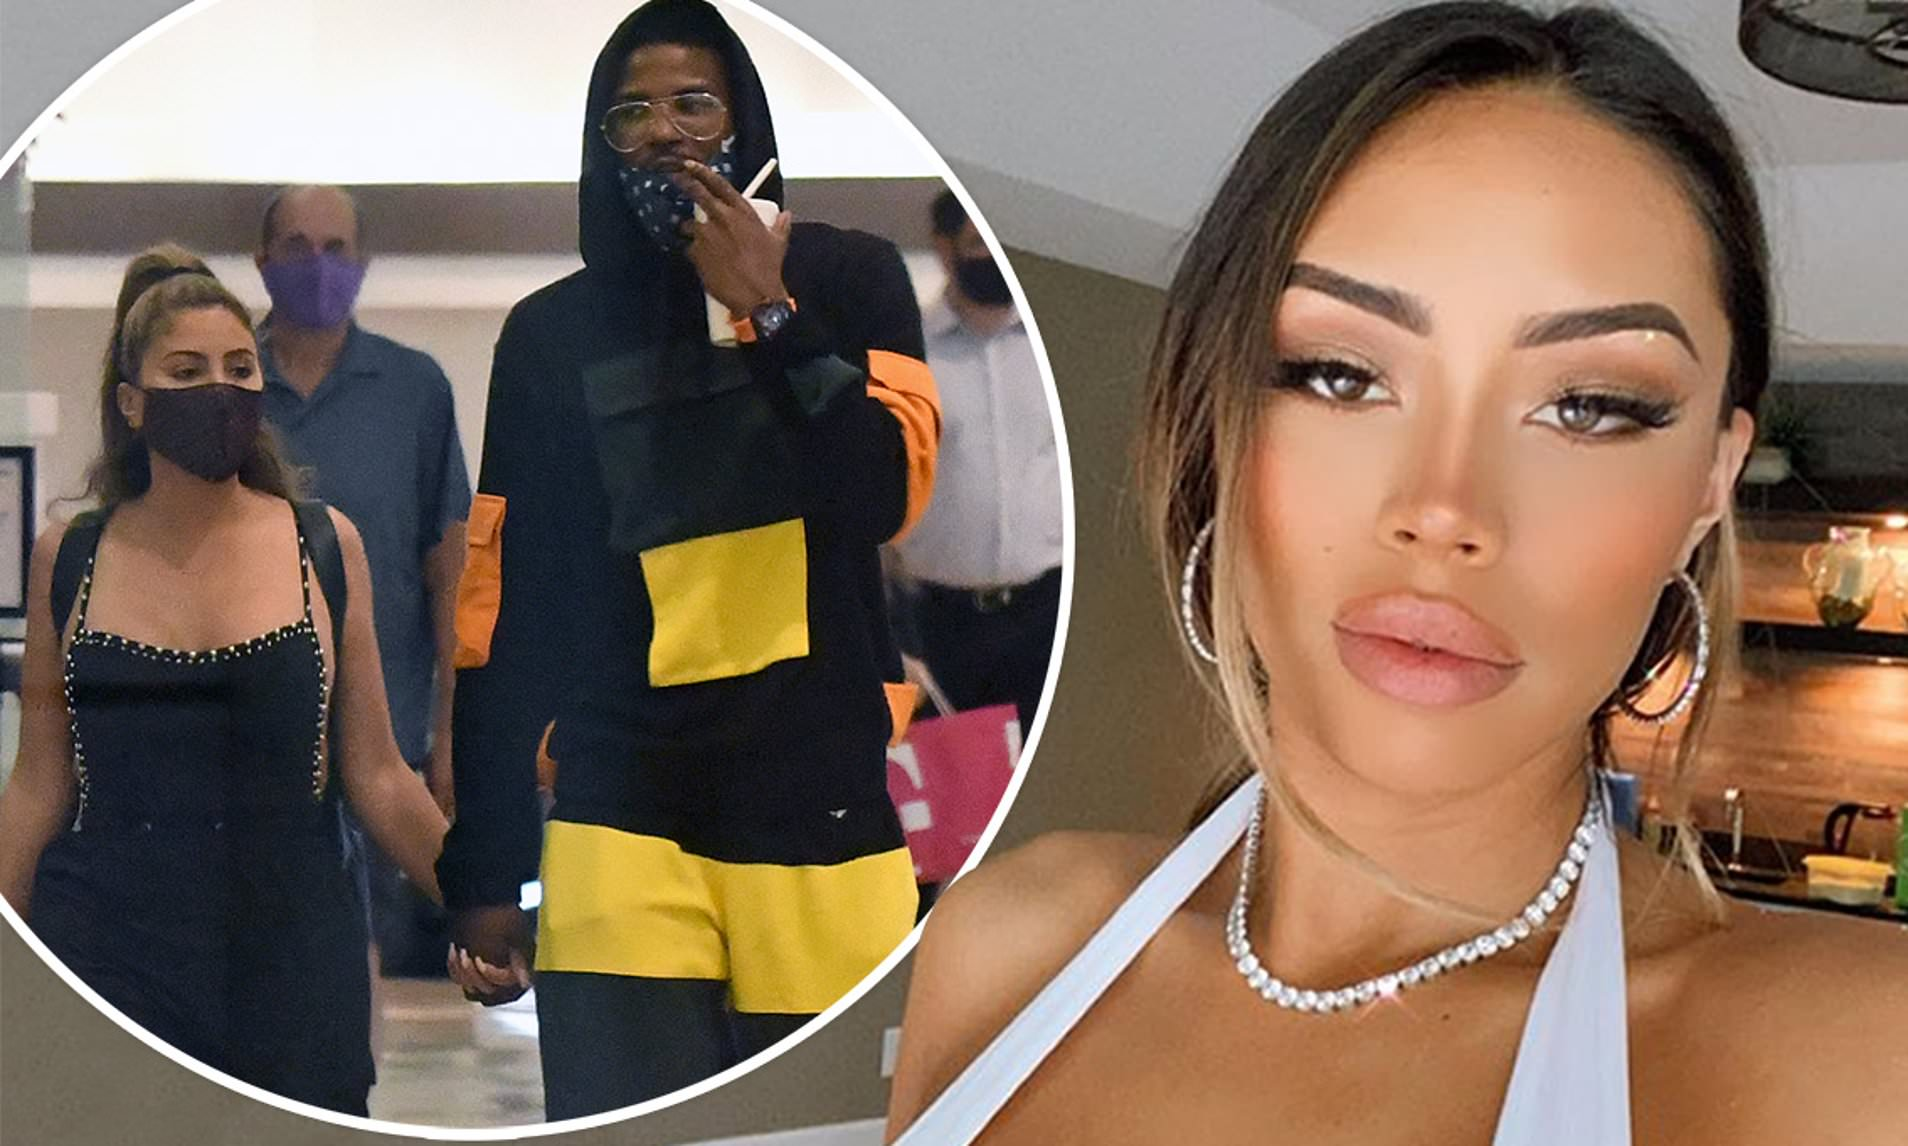 NBA star Malik Beasley's wife Montana Yao has reportedly filed for divorce just days after his cheating scandal became public. Pictures of Malik holding hands with ex Kardashian friend Larsa Pippen were released earlier this week.